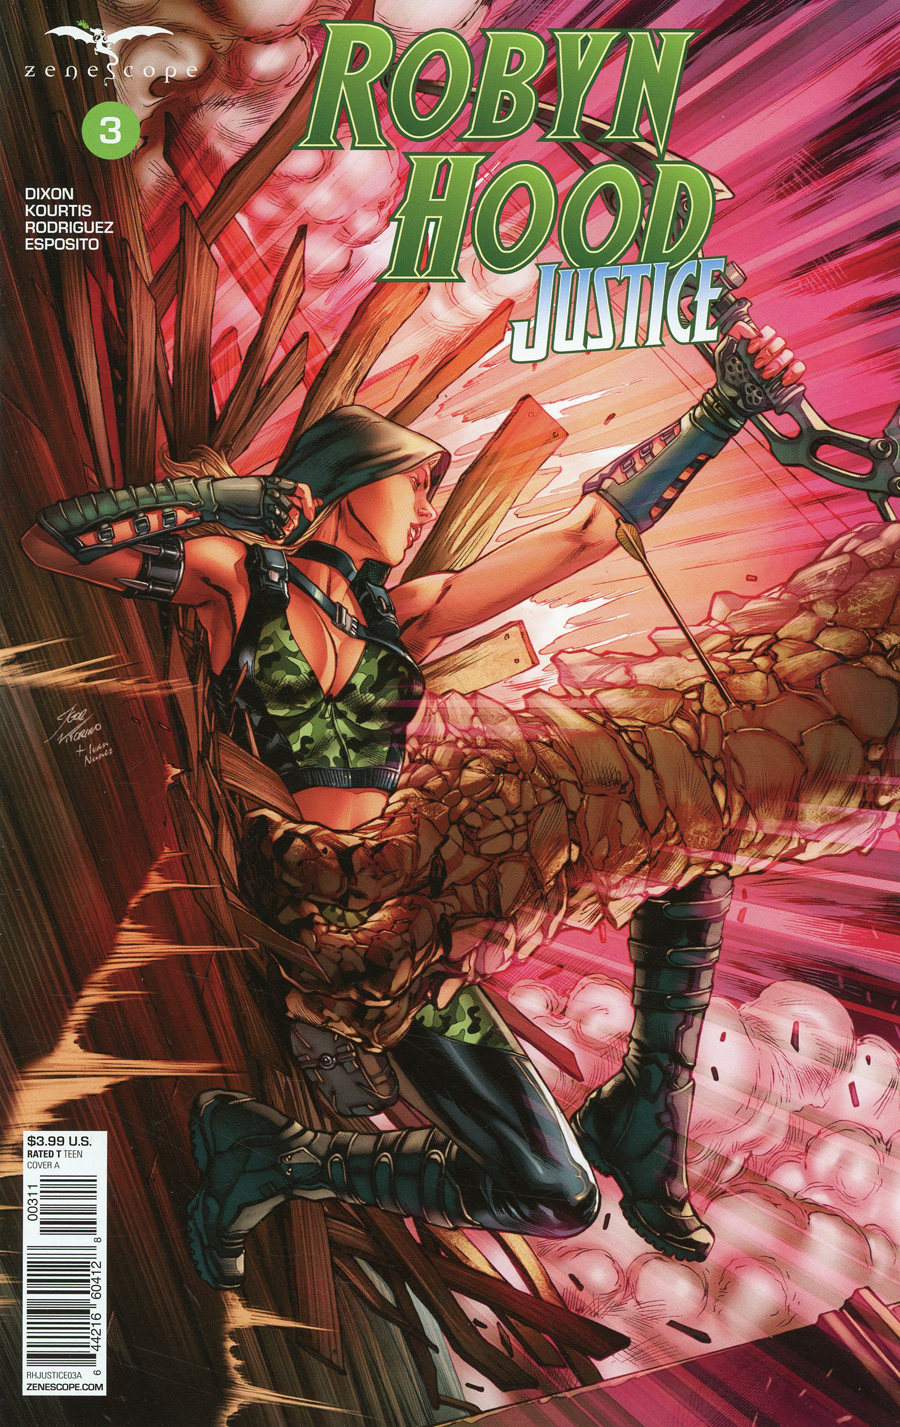 Grimm Fairy Tales Presents Robyn Hood Justice #3 Cover A Igor Vitorino